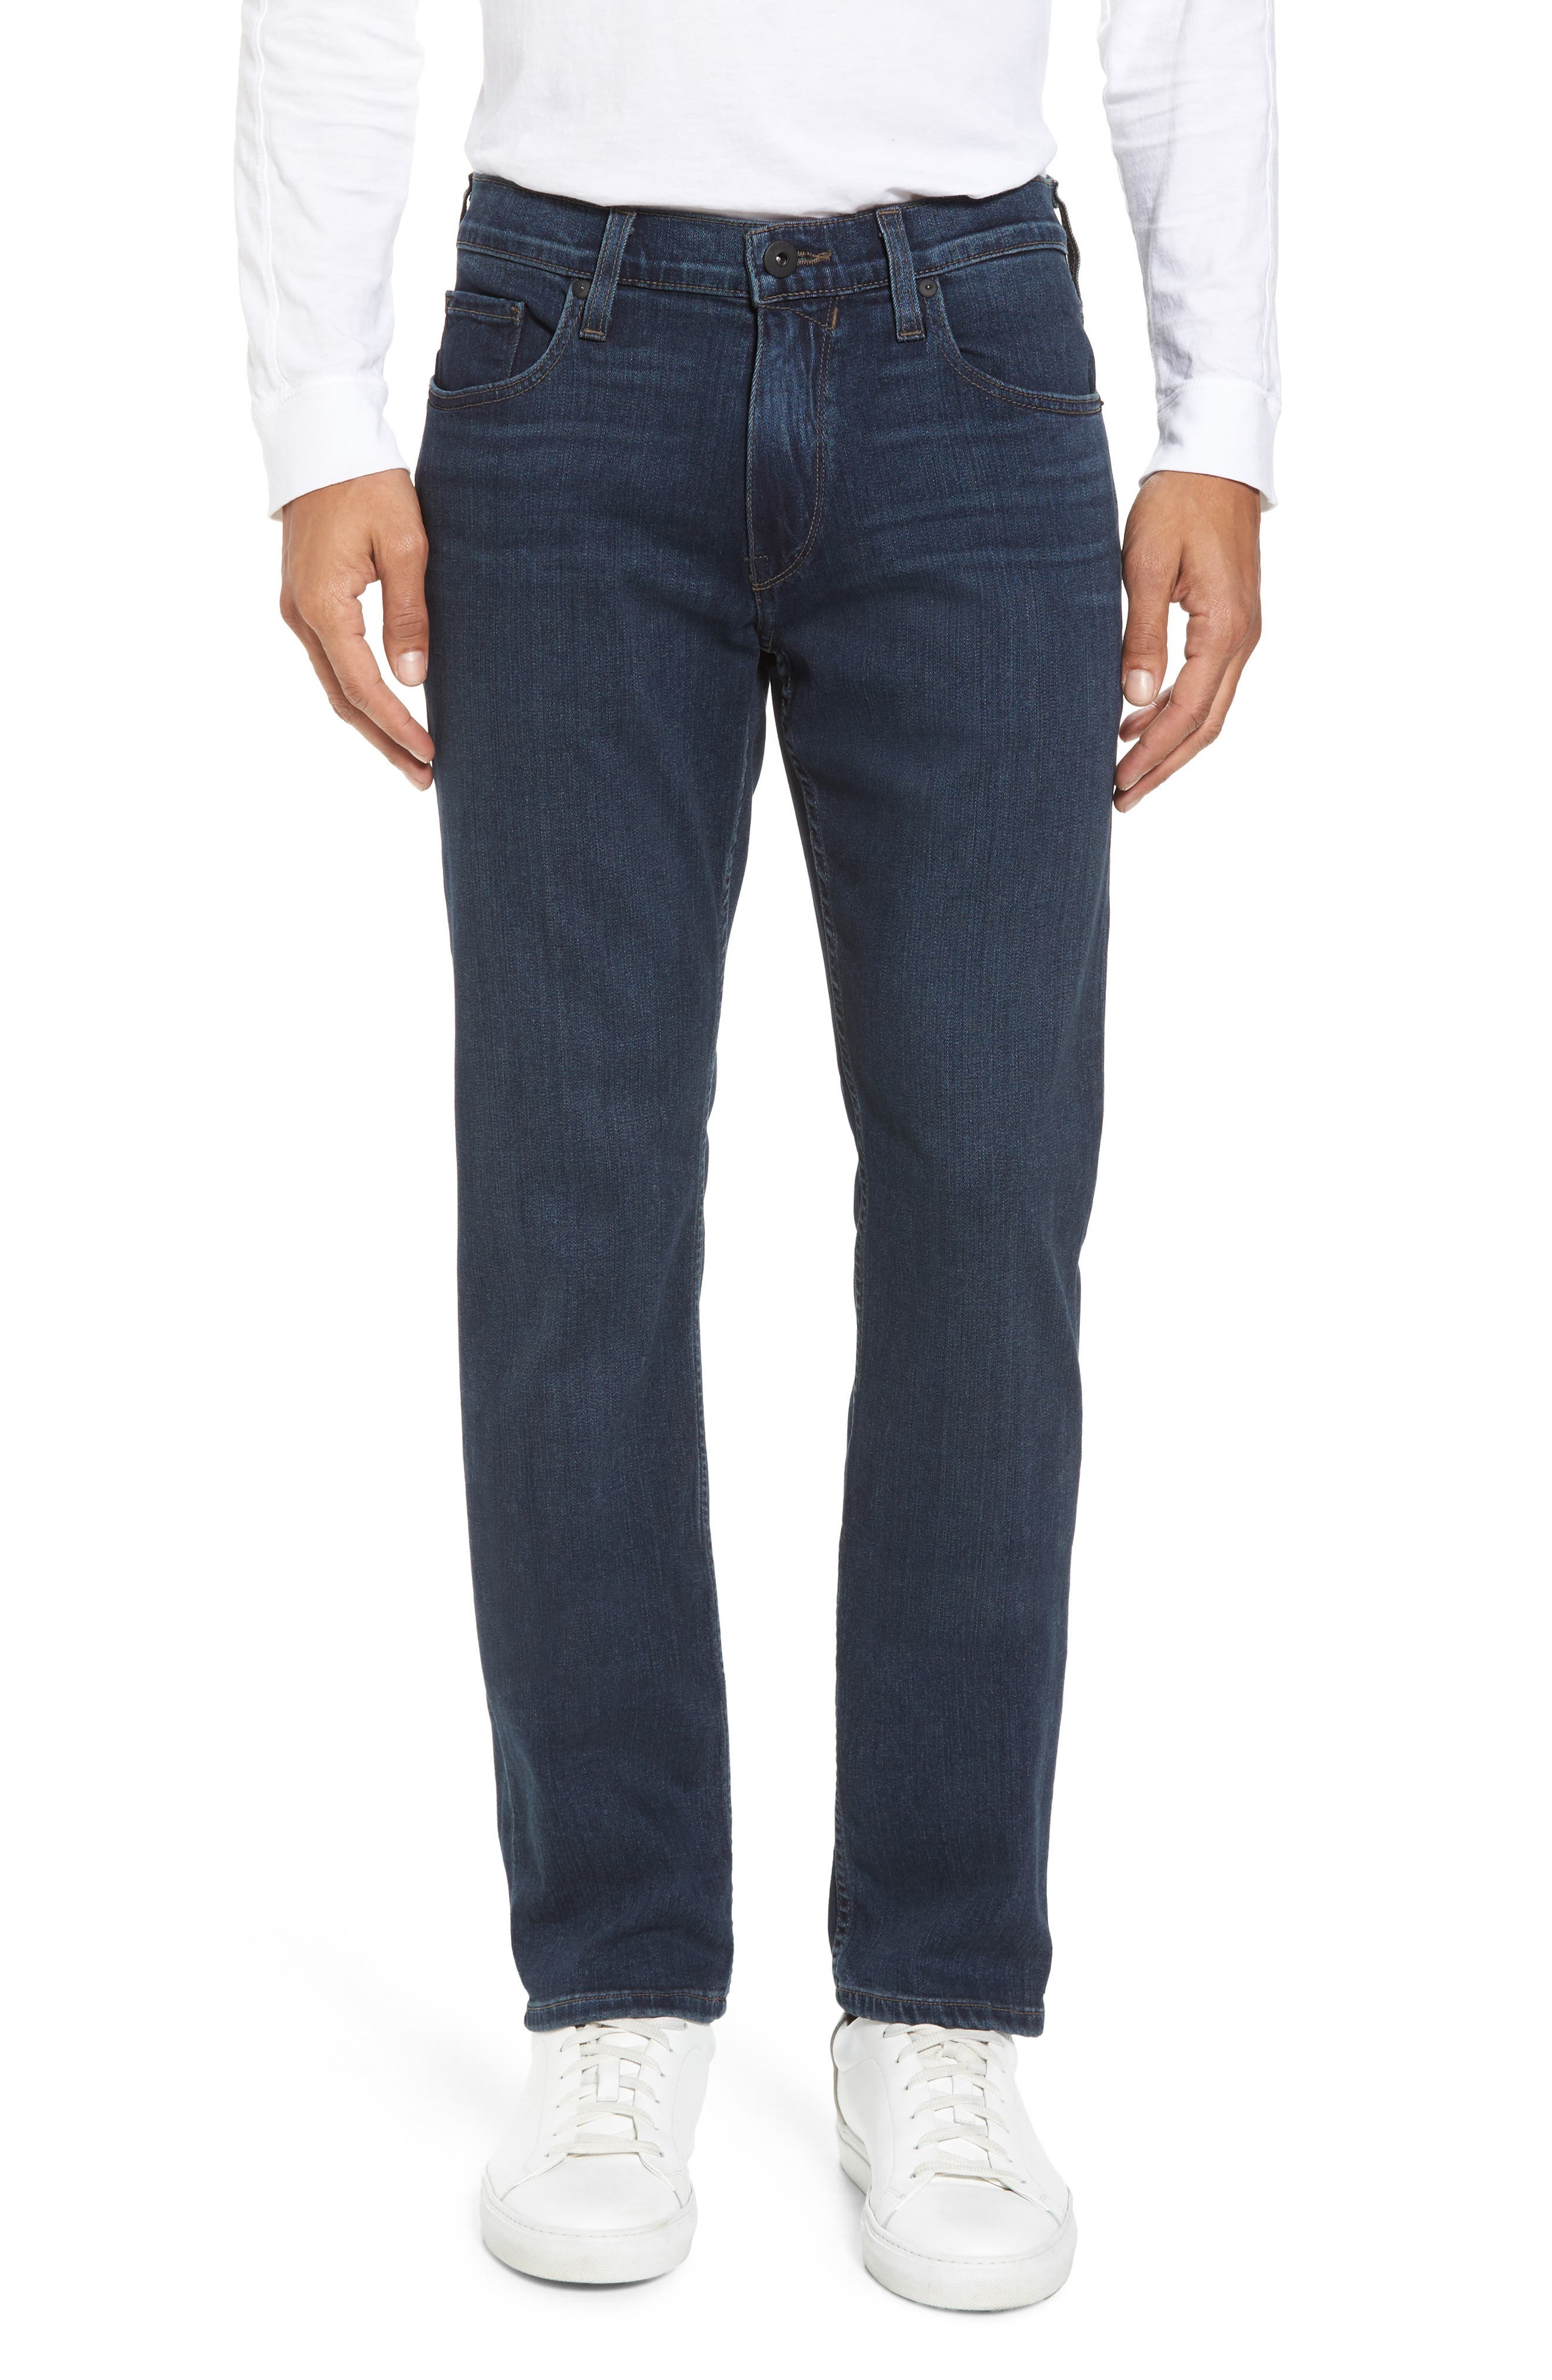 Transcend - Federal Slim Straight Fit Jeans,                             Main thumbnail 1, color,                             Benji